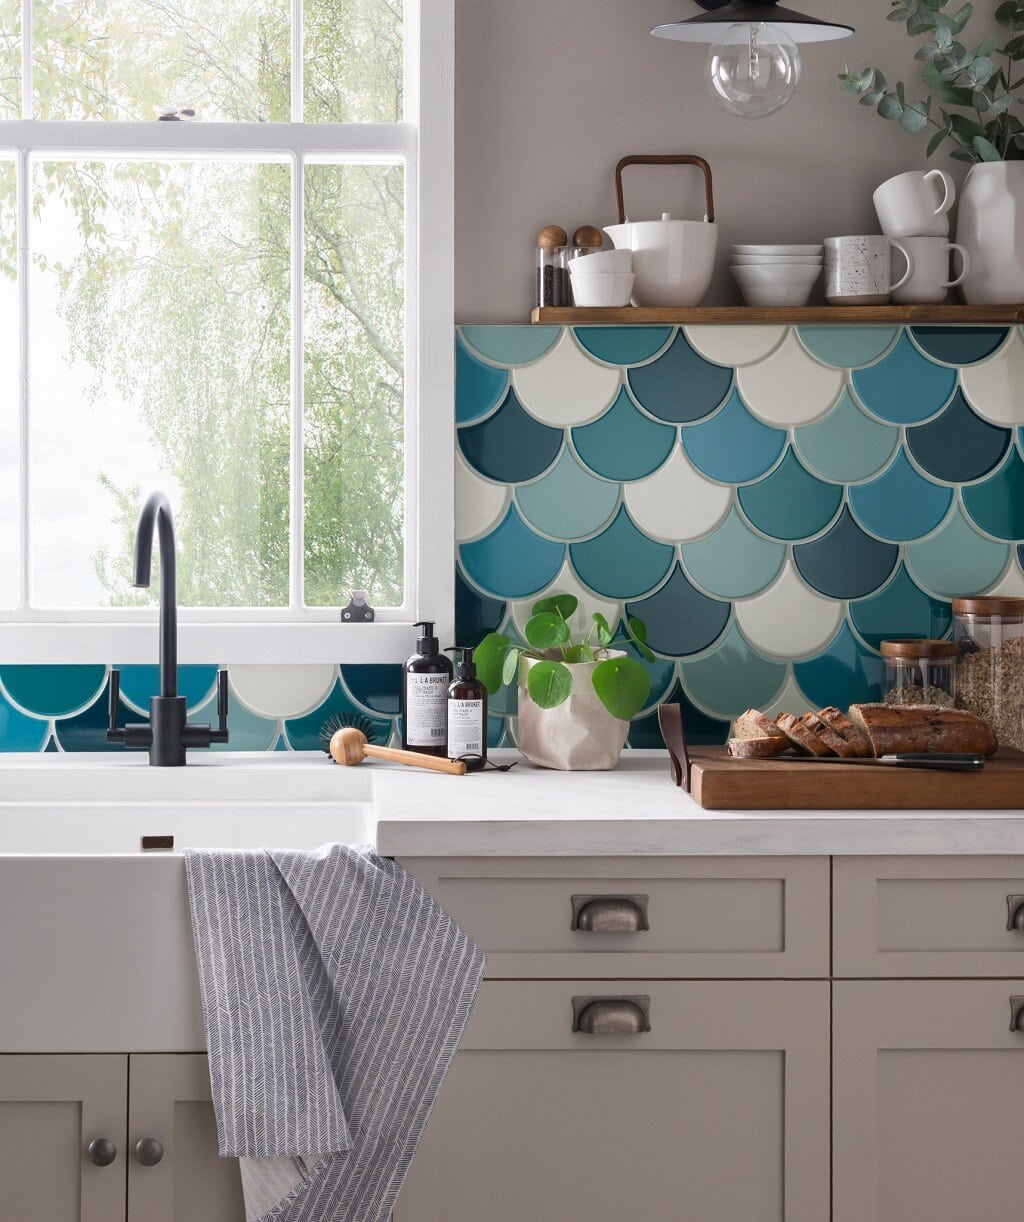 Using all 5 different tiles in the kitchen. Credit: Topps Tiles